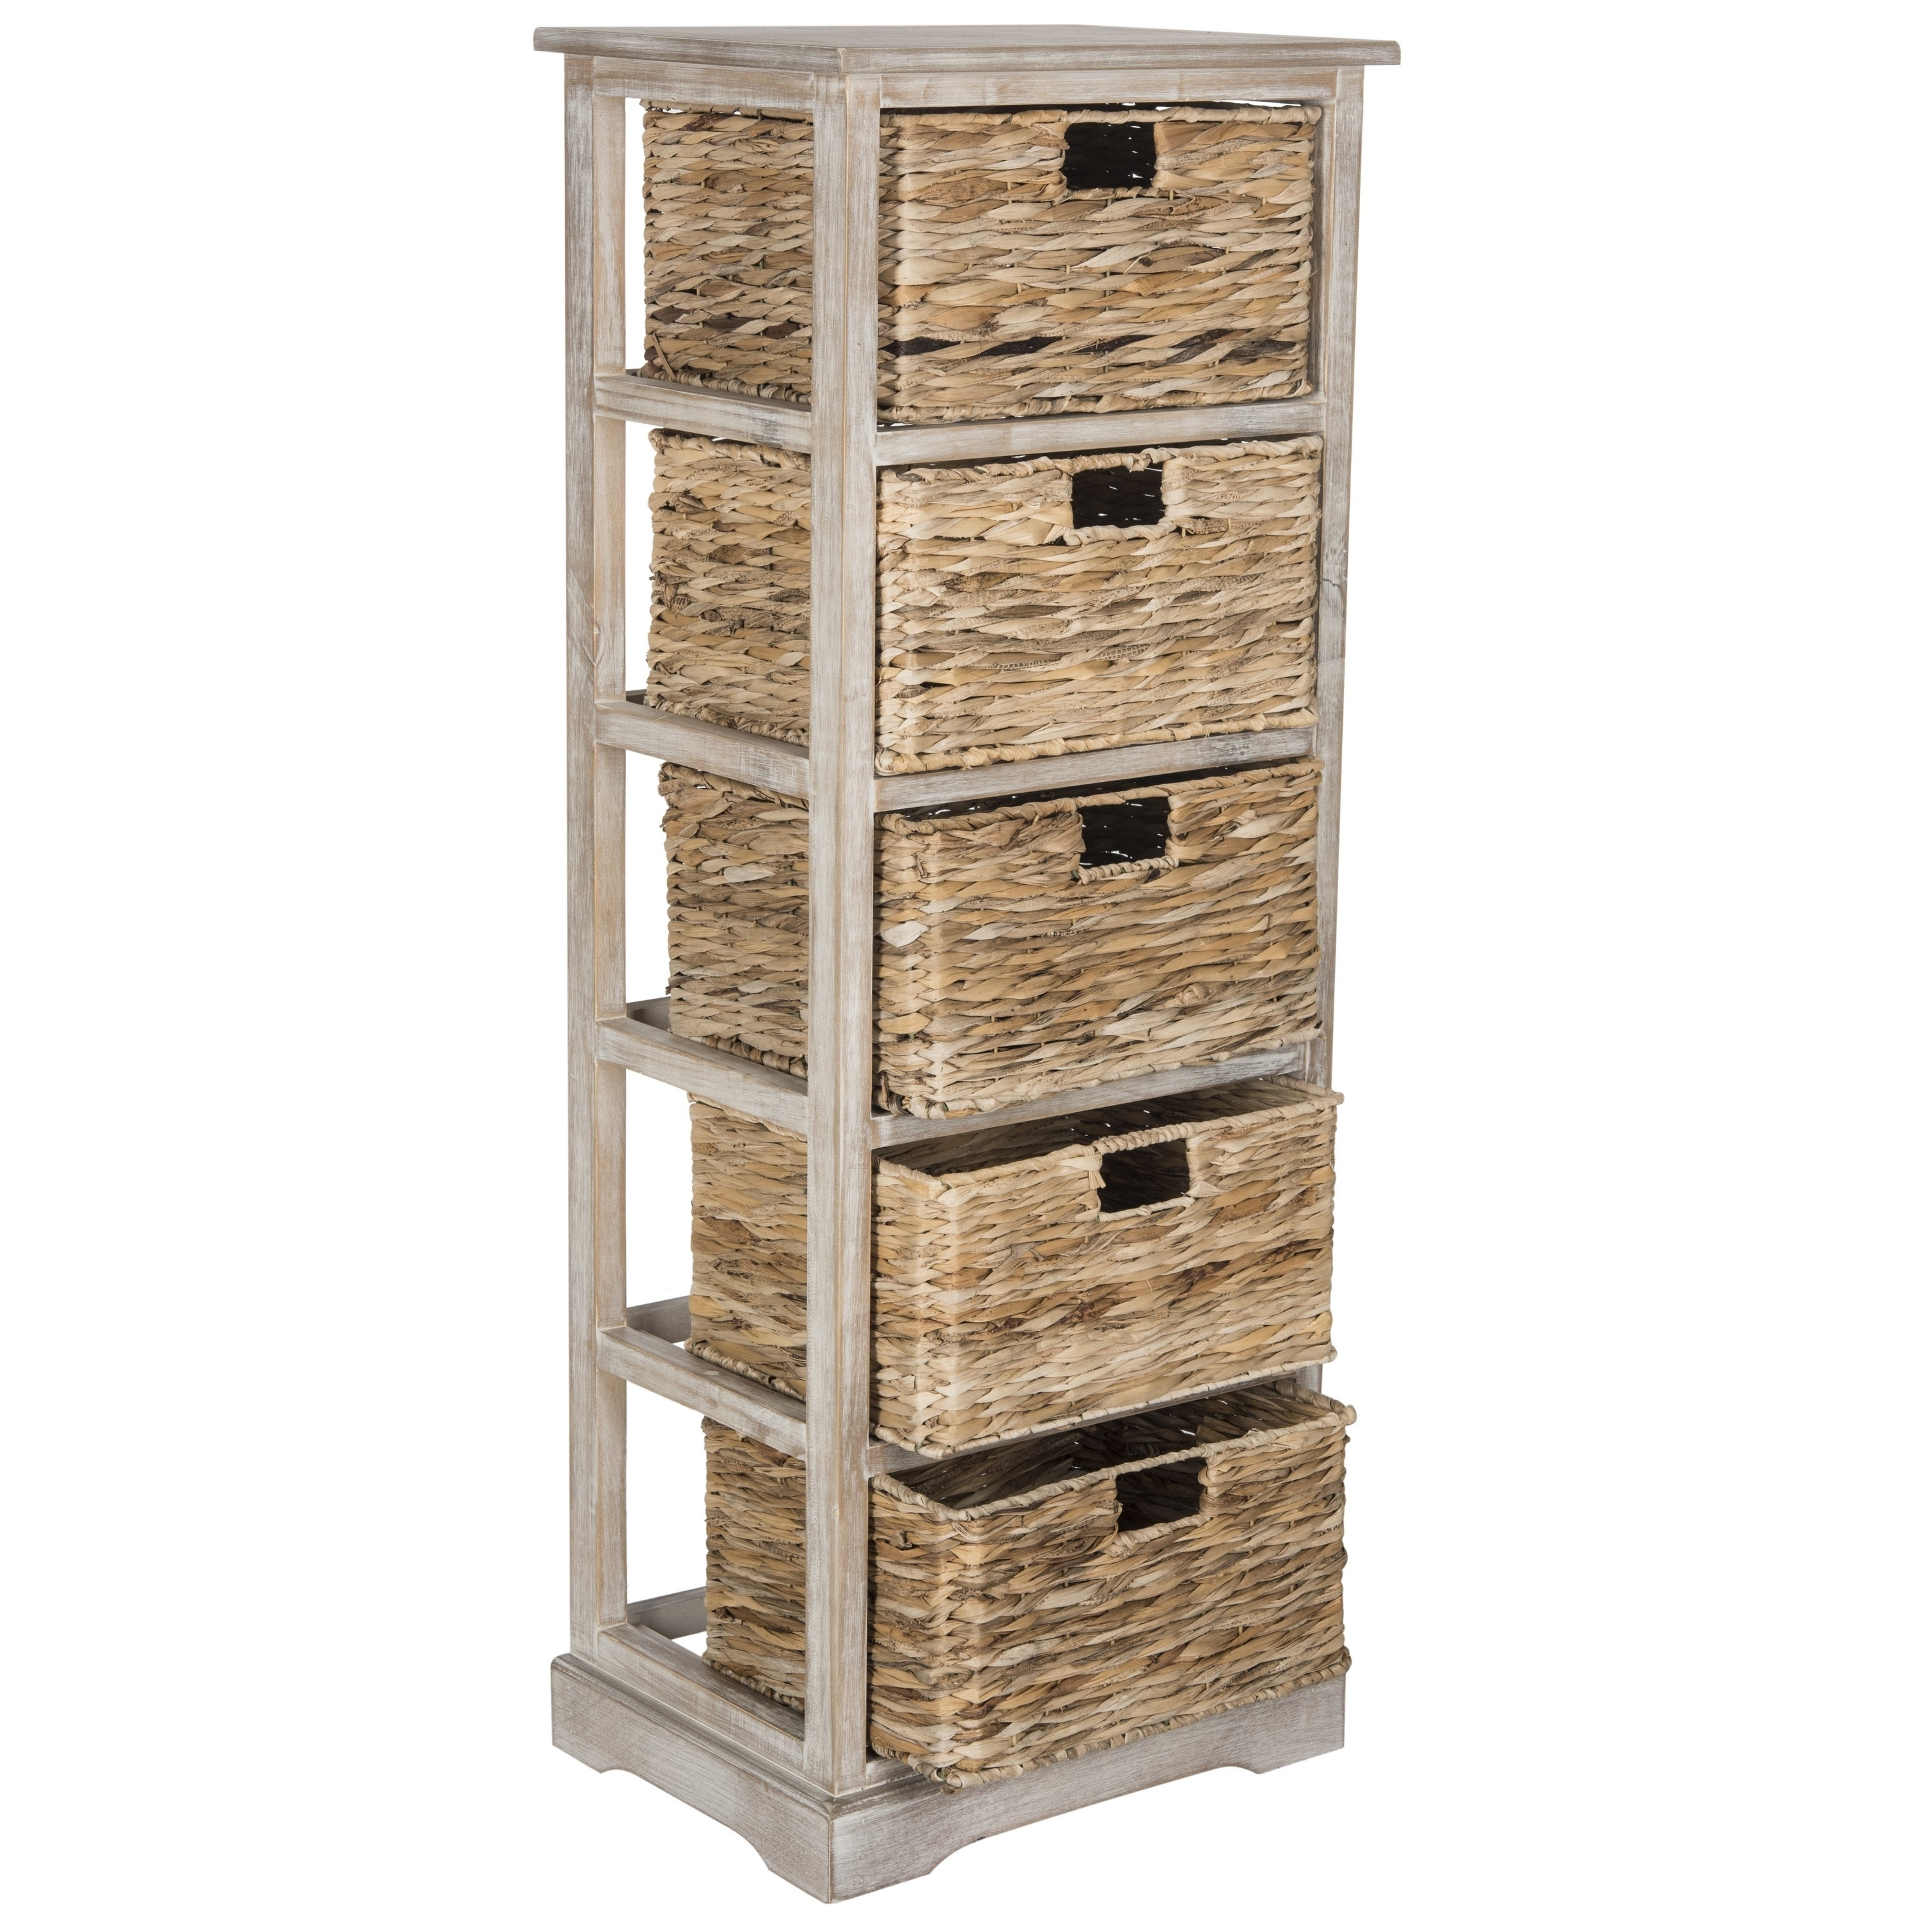 Shop Safavieh Vedette Winter Melody 5-drawer Wicker Basket Storage Tower - Free Shipping Today - Overstock.com - 10857153  sc 1 st  Overstock.com & Shop Safavieh Vedette Winter Melody 5-drawer Wicker Basket Storage ...